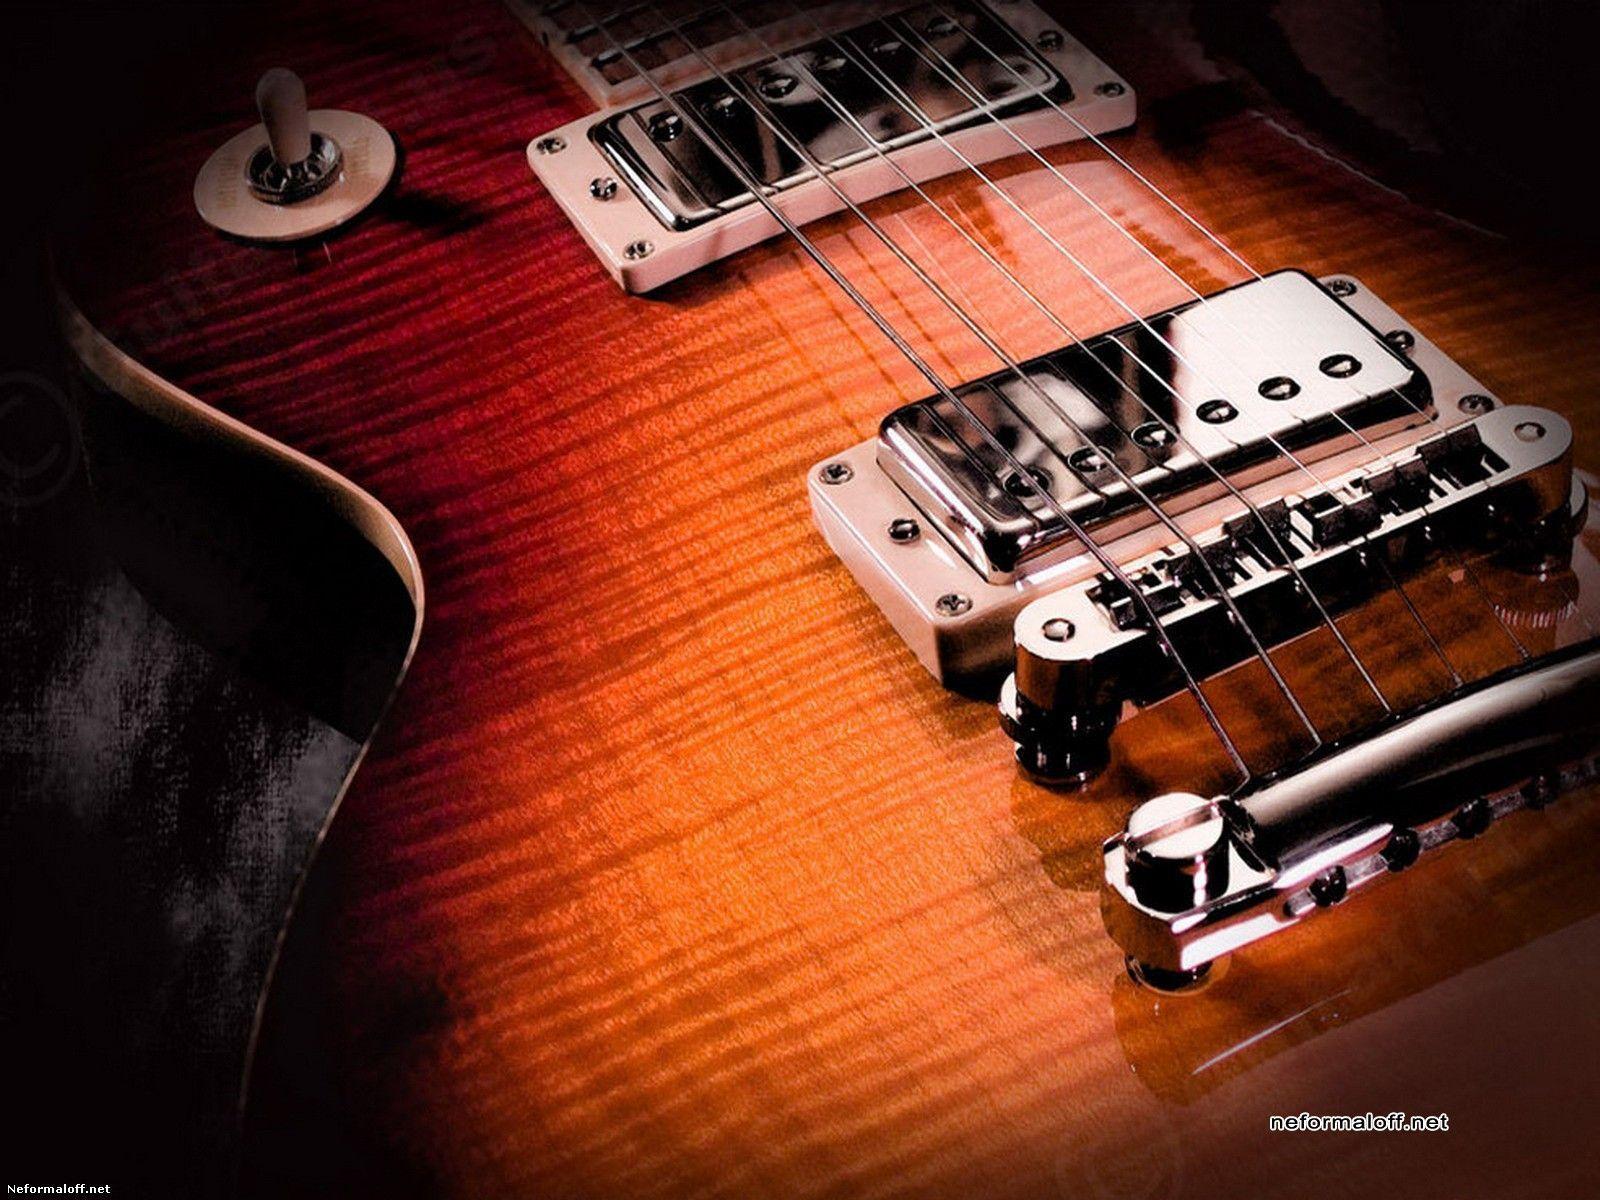 guitar wallpapers high quality free 1600Ã 1200 cool guitar